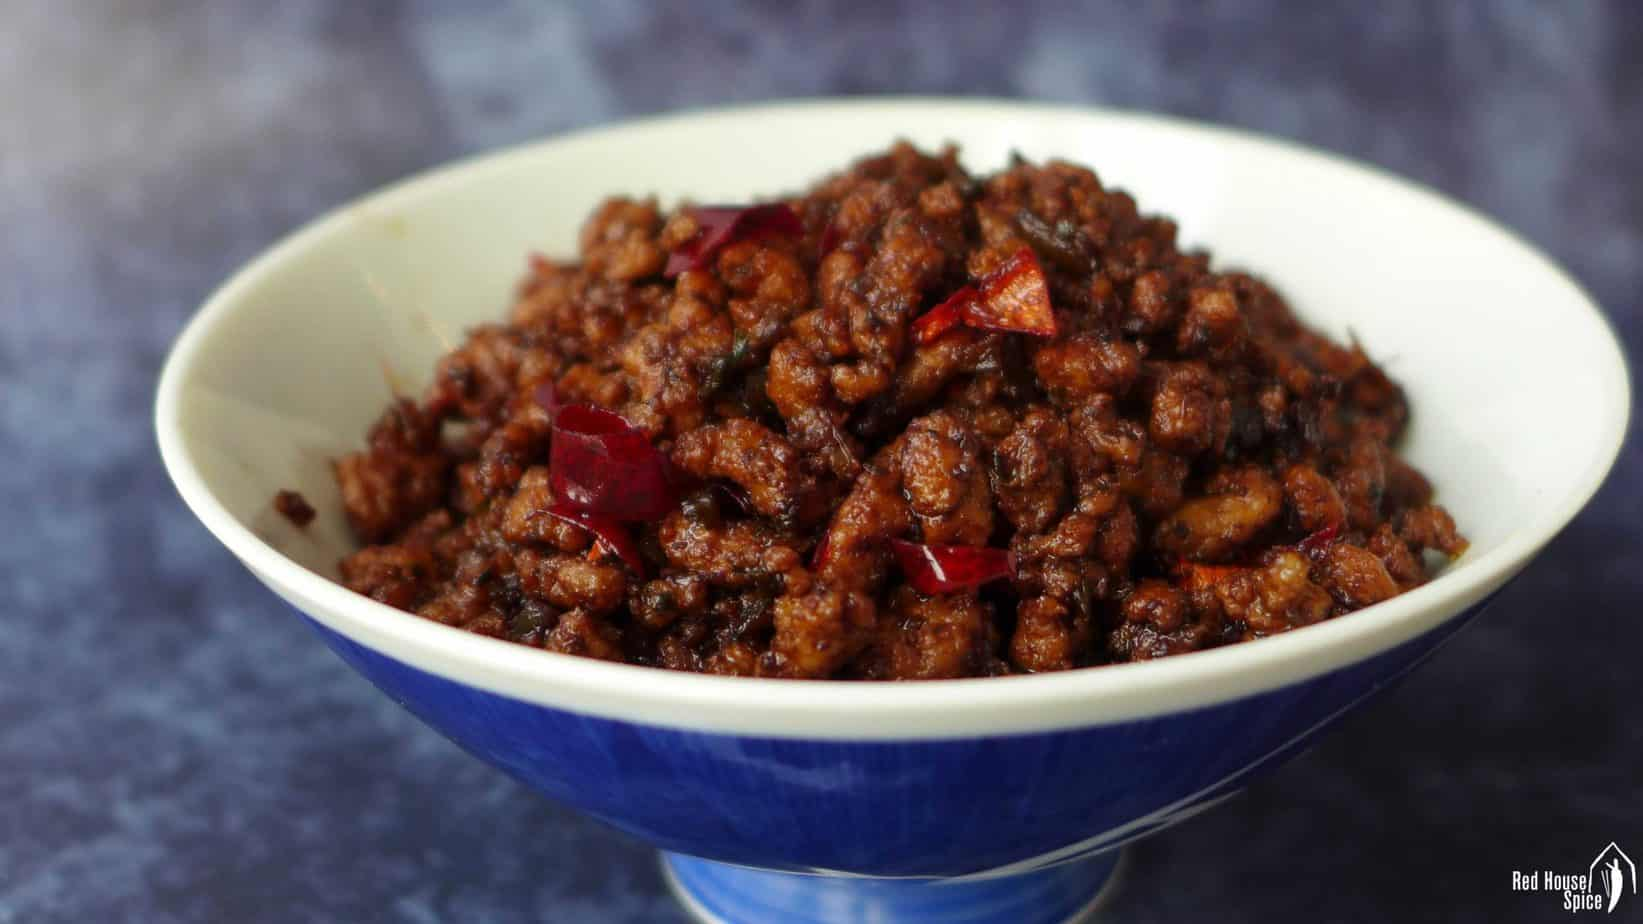 Fried minced meat for Chongqing noodles in a bowl.